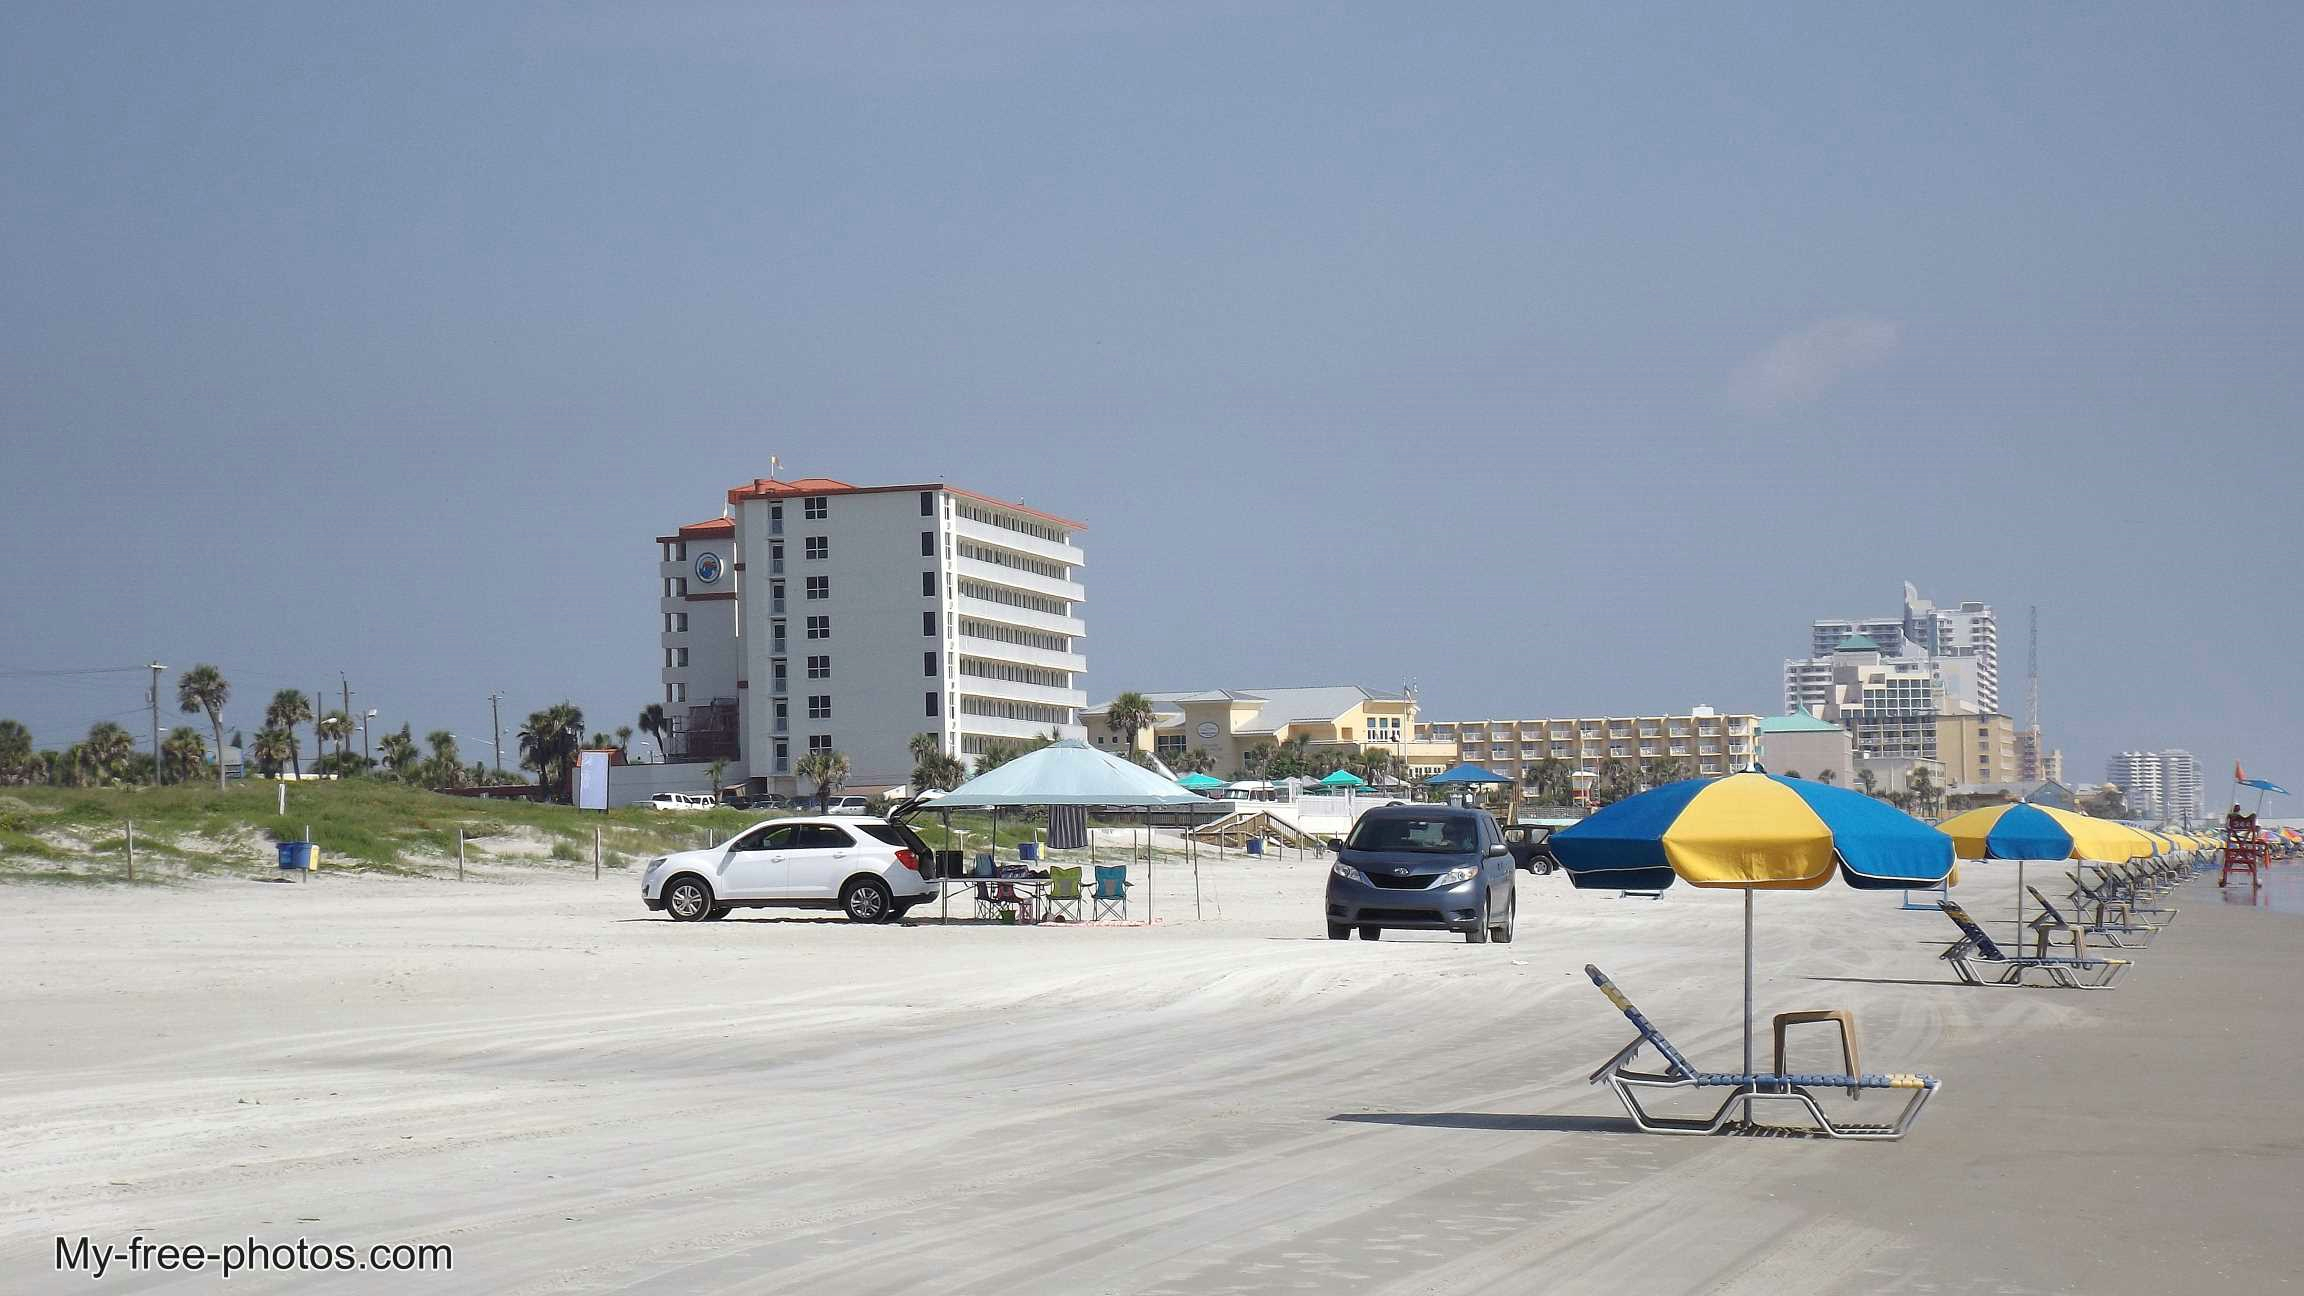 Cars on Daytona Beach